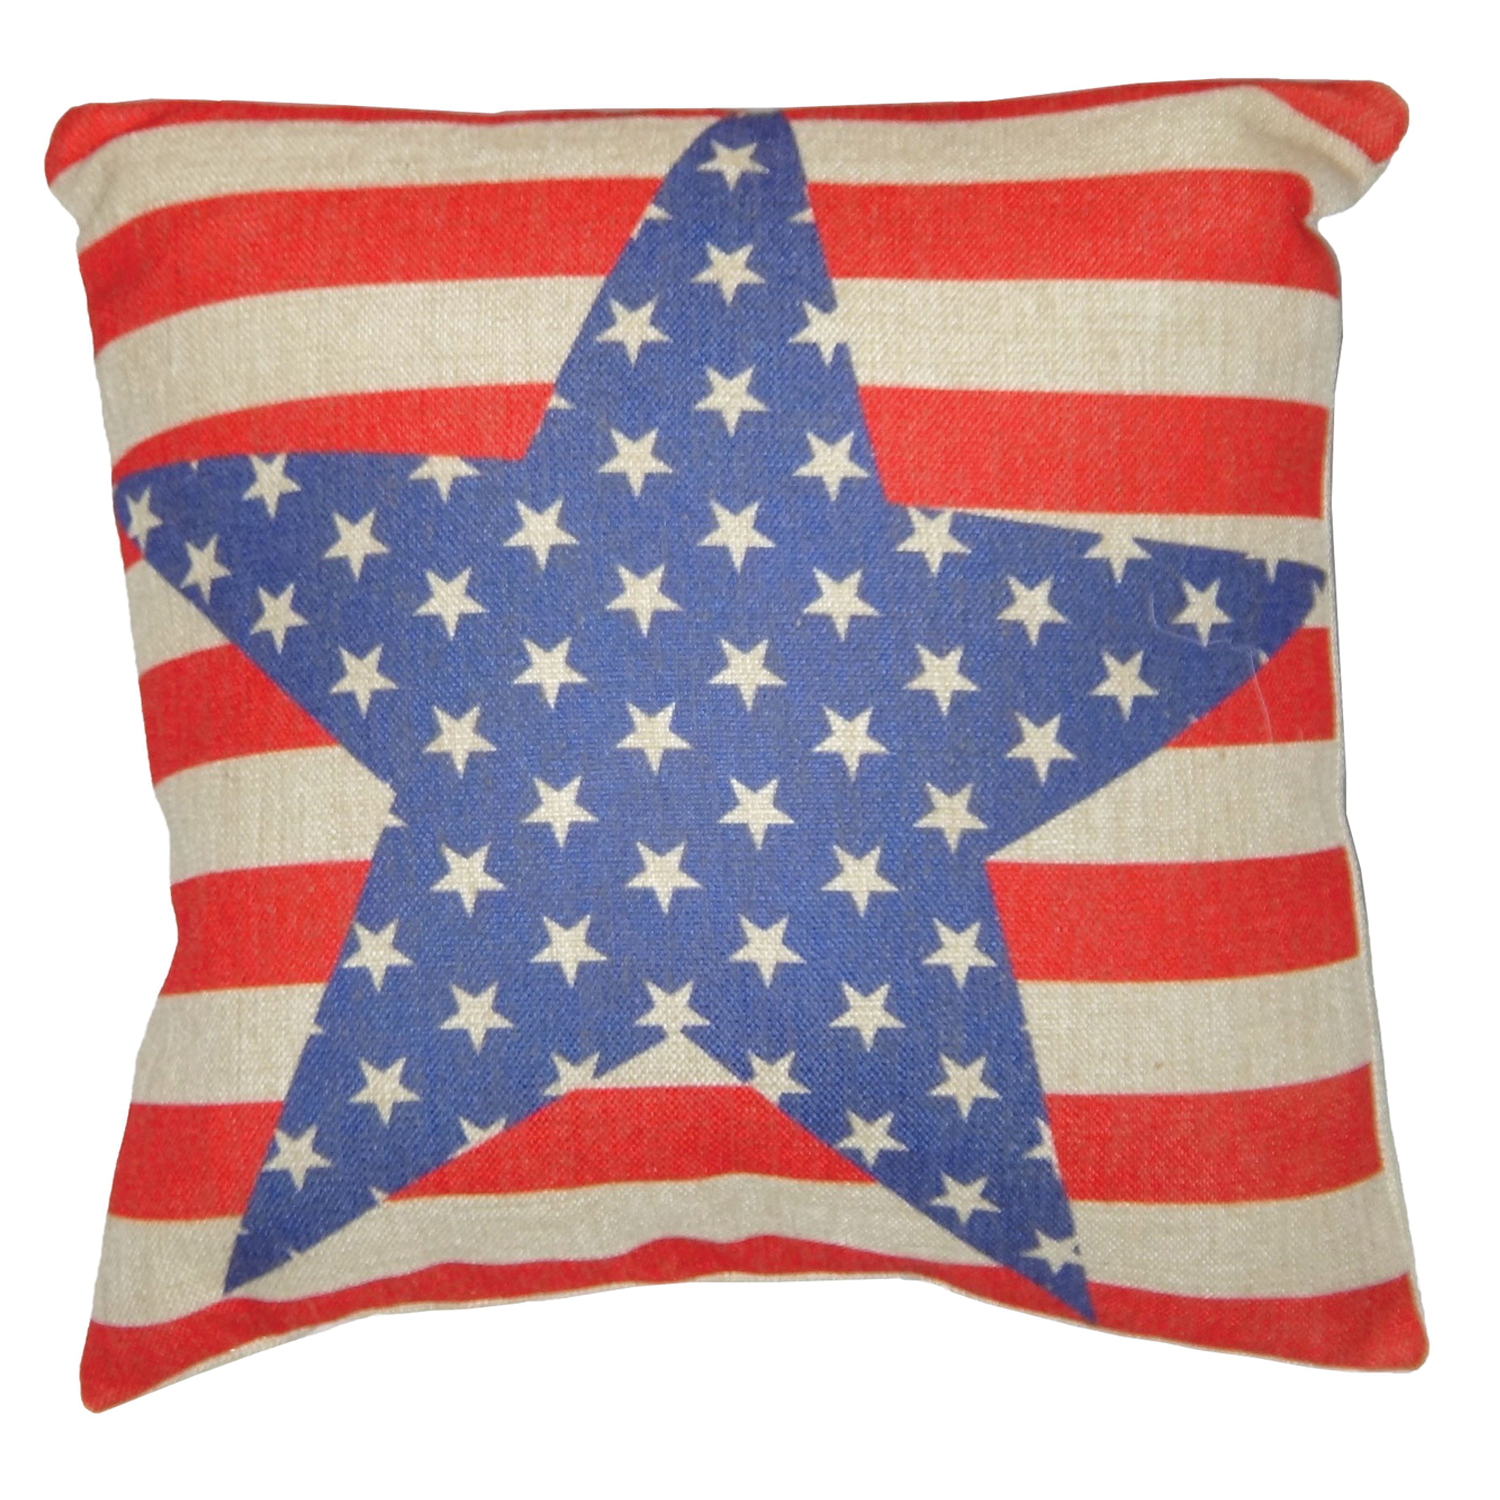 18 inch stars and stripes pillow